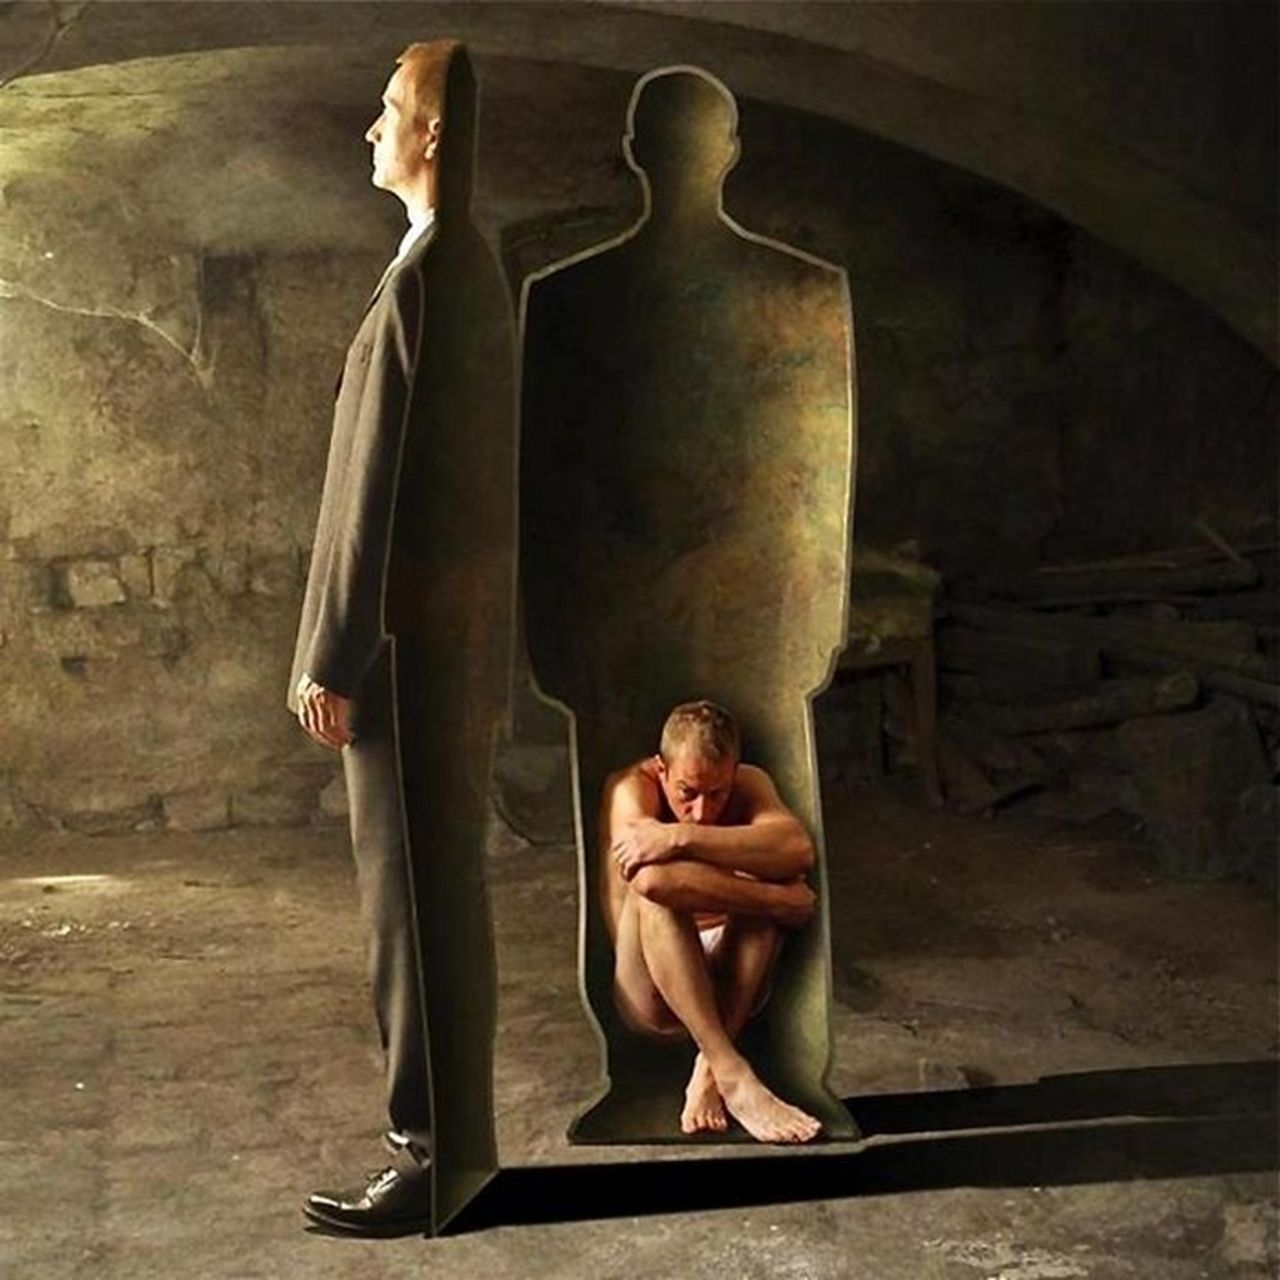 La prigione dell'Io interiore, opera dell'artista visionario Igor Morski. Igor Morski Inner self jail empty painting digital art cultstories.altervista.org cult stories cultstories cinema cult story cultstory art culture music ipse dixit aneddoti citazioni frasi famose aforismi immagini foto personaggi cultura musica storie facts fatti celebrità vip cult spettacoli live performance concerto photo photography celebrity giornalismo scrittura libri genio pop icon attore cantante solista pittrice scultore attrice star diva sex symbol mito artmoney artvid artplay artlebedev arteezy artik pres. asti artstation artdeco artmoney pro artskills art up city art deco art visage art deluxe hotel art gsm art of war 3 art play art nouveau art house art аниме art аббревиатура art андроид арт акварелью art алматы art азия арт академия арт ателье блеск арт атак на русском арт атак смотреть онлайн f art f art івано-франківськ f art kharkov f arthur uebel f arthur jones f articulation f art magazine f artist f. arthur clark f-art kraków art бани art бани сходня арт багет студио art блог art бессонница art барышня арт блеск арт багет арт бетон арт бисер барт б артаев б. артур б-арт краснодар барт механиков 8800 arte б у цена б у 8800 arte б'арт бишкекский арт центр nokia arte б у план б арт паб art вк art винегрет art видео art в фотошопе art вики art вконтакте art виртуальная машина art вместо dalvik art в андроиде art взуття в артериях малого круга кровь в артеке в артемовске в артели в артеке есть wi fi в артемовске сгорела церковь в артеке есть свет в артемовском умер ребенок в артеме задержана банда спортсменов во рту art галерея art гейнер арт грация арт группа война арт группа война курица арт группа беларусы арт группа война в музее арт групп арт гид арт графика u art u artasha u artusha u arts philly u arturo prat u art academy u artystów olsztyn u art museum u arturo prat santiago u artura tylicz art девушка art дизайн art директор арт деко арт дизайн артдонбасс арт деко в интерьере арт джем арт деко одежда арт деко косметика д'артаньян д'артаньян и три мушкетера д арт д арт стоматология воронеж д'артаньян и три мушкетера онлайн д'артаньян и три мушкетера песни д арт чебоксары д артаньян гвардеец кардинала д арт ангарск д'артаньян и три мушкетера мультфильм art ель бессонница art ель бессонница фотоотчет арт елка art ель арт еаст арт елка своими руками арт еда арт ель арт-екатеринодар арт ева к t art it artel t artifact echo t arts collective t-art fashion t.art videography t art torino t art designs t artikelken aalst t arte escola арт ёлка арт ёжик арт ёлка своими руками art artik & asti art жк art журнал art животные арт живопись арт журналы арт животные арт журналистика арт жалюзи арт живопись пейзажи арт живопись искусство art значение art знаки зодиака art значение слова art загар art запчасти art завод арт завод платформа арт звіт арт звит арт звит плюс p art studio p art parter p artist p artificial chromosome party p art ibiza p art mozi szentendre p'art mozi műsor p'art mozi moziműsor art или dalvik art искусство art игра art истина art идеи art и шок art инстаграм art и я арт искусство арт и дизайн иарт и артур смольянинов и арташонов art quotes art quiz art quest art qotanjyan art questions art qrupu art quotations art q art garden art qrupu hardasan q art q art studio q art design q artistry q art salon q artz q arte jardim camburi q art fitness artista que murio hoy q artwork art картинки art карандашом art кальян art кафе art квартал art крост art картинки на аву art картинки на рабочий стол art конкурсы art картины карта к артель картинки к арт карта мира к артериям мышечного типа относится карта метро картины карта москвы карта россии art любовь art лебедев арт лайф арт лайн арт лайф отзывы арт лайф продукция арт лайф каталог арт лео арт лайф официальный сайт артлавка k art k art gallery villa k arts university karta k art papuosalai k art performance k art gallery villa canggu k art auskarai k art studio art мебель art методика art музей art магазин art мебель алматы art мысли арт менеджмент art методика препарирования art методика стоматология art минск м арт м арт томск м артс м арт благовещенск м арт самара март реутов м арт саранск м артс инфо м арт студио м арт кисти отзывы art на рабочий стол art на аву art новости art на андроид art не работает art на русском art на miui art на mtk art на английском арт нуво нарты нарты из абхазии нарткала нартский эпос нарт нартекс нартов нарта нарты купить нарты кадджыта art обои art обувь art отель art отель казань art обстрел art открытки art обработка art обои на рабочий стол art обои под покраску art оружие о артемий владимиров о артемий владимиров видео о артеке оп арт art перевод art перевод транскрипция art перевод слова art пространство art портрет art перевод с английского art перевод с немецкого art прилагательное art предусилитель art подарки g art hostel g arte g art москва g art гатчина g art hostel moscow g art запорожье g arti g art studio g art gallery g-art capsule art рисунки art режим art рисунок арт ретушь art раскраски art режим андроид art режим что это арт рок арт рисунки арт родник artx.sk x art armenia x art-kyiv contemporary x art studio piaseczno x art of life x article x art login hack x arte banfield x art uk x art premium account hack art студия art сайт art самара art словообразование art среда art синонимы art салон art спектакль art студия учебный центр россия art словарь с артритом к какому врачу с артемом дмитриевым с артритом берут в армию с артериальной гипертензией берут в армию с артрозом берут в армию с артиклем или без смартфоны с артемом с артуром и весом в руке art транскрипция art топик art телефон art тюнинг art терапия art тур art топик английскому языку art ткани art театр на васильевском art техника в стоматологии m arts n artists (n) artinya n artro giro n-art hair styling n'artro giro trastevere n-art studio n artro giro roma n-art-m n-art art узел art ульяновск art украина art урок английского арт ульяновск арт украина арт ультра артуголок арт украина киев арт юа e art e art vk e artsup prix e-artnow e-artemis e arte gr earth e-artemis.gr e artis e arte manha art фото art фотошоп art фотографии art фитнес art фабрика art фото онлайн arc формат art фабрика цены art фэнтези art фабрика лего a article a arte da conquista a art a articula a arte da guerra a artist a artikel a arte da guerra download a arte grega a arte de os mutantes art художники арт хаус арт хаус фильмы арт холл арт холл норильск арт хаус онлайн арт холл брянск арт хаус винница арт холл таганрог арт хаус фильмы лучшие art цитаты art центр art цветы арт центр ветошный арт центр пинчука арт центр квартира арт центр перинные ряды арт центр пушкинская 10 арт центр самара арт-центр якова гретера w art w art by waldo w artykule przedstawiono w arthur fisher w arthur porter wartune w arte pop w art issue magazine w artigos funerarios w'art ceramica art что это art что такое art чердак art чем открыть арт что это арт челлендж арт чойс арт чайна арт чайхона арт чат art шрифт art шок арт шоу арт шат одесса арт шоу самара арт штурм арт шар арт школа арт-шоу википедия арт шпигельман i art i artist i articolo determinativo i articoli determinativi i art ink i articoli in italiano i art thou and thou art i i articoli indeterminativi l'art pour l'art i art basel art of war art of shaving art of fitness art of war 2 art of dying art of flight art of noise art of tactic art of glow o article o articol nehotarat o artista filme o articol nehotarat propozitii o articol o artık buz kalpli o articol nehotarat sau numeral o artesanato o artista o arthur art sound art studio art sound xe 1k art style art silver art space art sound xe 754 art school art shaving art shima s art s art уфа s art gallery s article s art tv s art iptv smartfon s arti sarter s artspace gallery art me art models art marker art music art museum art models краснодар art m-one art minecraft art market m arts info m art m art кисти украина m articularis genus m articularis cubiti m art print m art gallery m artist m art band m artin art это art эссе арт эко арт это арт этюд арт эстель арт экспресс арт эйдж арт эко отзывы арт эксперимент гараж э артемьев э артемьева музыка арт ювелир арт юнион арт ютуб арт ютел арт ю арт юг ооо арт юнион краснодар арт ювелир отзывы арт юкрейн арт юа одесса ю арт студио киев арт яблоко арт ярмарка арт яблоко иваново арт япония арт ярославль арт ясмина реза арт ярмарка красноярск арт ярмарка камышин арт ян александрович z art z art vk z arts hulme z art automotive z'arts up z'art zermatt z art muebles z arts up 2013 z'art zermatt restaurant z arts manchester art 007 art 03 pqrsidn art 03 art 05 art 003 art 0f war art 003 psu art 01 art 02 art 058 ley de educacion 0 article grammar 0 article in english 0 article 0 art spirit forest artificer 0-400 artificer 0-400 guide artificer 0-400 gw2 artificing 0-400 artifact 0 mana artelac 0.5 ml art 1920x1080 art 101 art 13 art 11 art 1366x768 art 16 art 15 clothing art 11 екатеринбург art 14 gallery art 14 1 artifact is missing rebel.xml 1 art gallery 1 arthouse 1 art bbs 1 artillery brigade 1 articolo della costituzione italiana spiegazione 1 art della costituzione 1 artikel grundgesetz 1 articulo dela constitucion española 1 artery 2 veins art 2015 art 21 art 2.1.0 art 23 combitrim art 22 art 2016 art 217 cod penal art 24 art 23 art 264 cp rm 2 artı 1 ne demek 2 arten von impfungen 2 artikel grundgesetz 2 articles on the same topic 2 artı 2 eşittir 5 2 article of the constitution 2 article 2 articolo della costituzione 2 articolo costituzione 2 art costituzione art 3d art 3g art 300 art 34 art 37 bosch art 310-a mk iii art 310 art 354 codul contraventional article 3 art 3 cedo 3 arts entertainment 3 artist 3 arts club 3 articles 3 артисты 3 arts entertainment inc 3 arten radioaktiver strahlung 3 arts studio 3 arts cafe at restoration hardware 3 art comic art 43 art 4 studio art 4 калининград art 4 you art 418 art 4pda art 406 art 4 studio стилисты art 4 living art 410 4 arts suites prague 4 arten von reptilien 4 arts studio 4 artists paint 1 tree 4 art cats uptown waterloo 4 art suites 4 arthur road edgbaston 4 arten von malaria 4 arten des lesens 4 article art 55 art 52 art 50 art 5 cedo art 530 art 55 cod contraventional art 5610 art 512 cod civil art 55 cod penal art 5500 a+ 5 artı 1 5 article 5 artykul nato 5 arti bir 5 artikel grundgesetz 5 artykuł traktatu północnoatlantyckiego 5 artisti plastici cunoscuti 5 art studio 5 article of the constitution 5 artı 1 sonuçları art 66 art 6600/a+/lh art 600 art 6502/a+ art 6 cedo art 6711/a++ sf art 6503/a+ art 6502 art 6713 арт 6602 6 articles 6 art elements 6 arten von niederschlägen 6 articles and nouns 6 articles of faith in islam 6 article of the constitution 6 articulos 6 arte 6 articolo della costituzione italiana 6 artikel gg art 72 art 79 cisg art 735-a art 70 art 79 art 715-a mk ii art 710-a mk ii art 70 томск art 745-a art 705-as 7 art studio 7 art production 7 article of the constitution 7 artifacts 7 arte 7 arte liberale 7 arten der verschwendung 7 arts libéraux 7 art studio grancia 7 artifacts game free download art 85 codul muncii art 800 art 82 art 82 codul muncii art 8 cedo art 89 art 86 codul penal art 8910 art 8910/a+ sf art 872 8 artillery row 8 art hotel on the bund 8 art elements 8 art principles 8 arten der verschwendung 8 articolo della costituzione italiana 8 articulo constitucional 8 articolo della costituzione 8 art city article 8 echr art 9812/a+ sf art 963/a+/nf art 9810/a+ art 9610/a+ art 9811/a++/sf art 93 арт 9051 art 9813/a++ sfs art 9070 арт 9056 9 artists we lost in 2015 9 arten der verschwendung 9 arten der intelligenz 9 article of faith 9 article 9 art galerie 9 articolo della costituzione italiana 9 articolo della costituzione 9 articolo costituzione 9 articulo constitucion art 103 cod fiscal art 101 tfeu art 10 cedo art 106 cod penal art 104 codul muncii art 101 aeuv article 107 tfeu art 108 code civil art100dx 10 arts bistro 10 arten von streiten 10 artis seksi korea 10 arten von pärchen 10 arten von urlaubern 10 artists to watch in 2016 10 arten von freunden 10 arten von minecraft pvp spielern 10 arten zu küssen 10 arten von youtubern